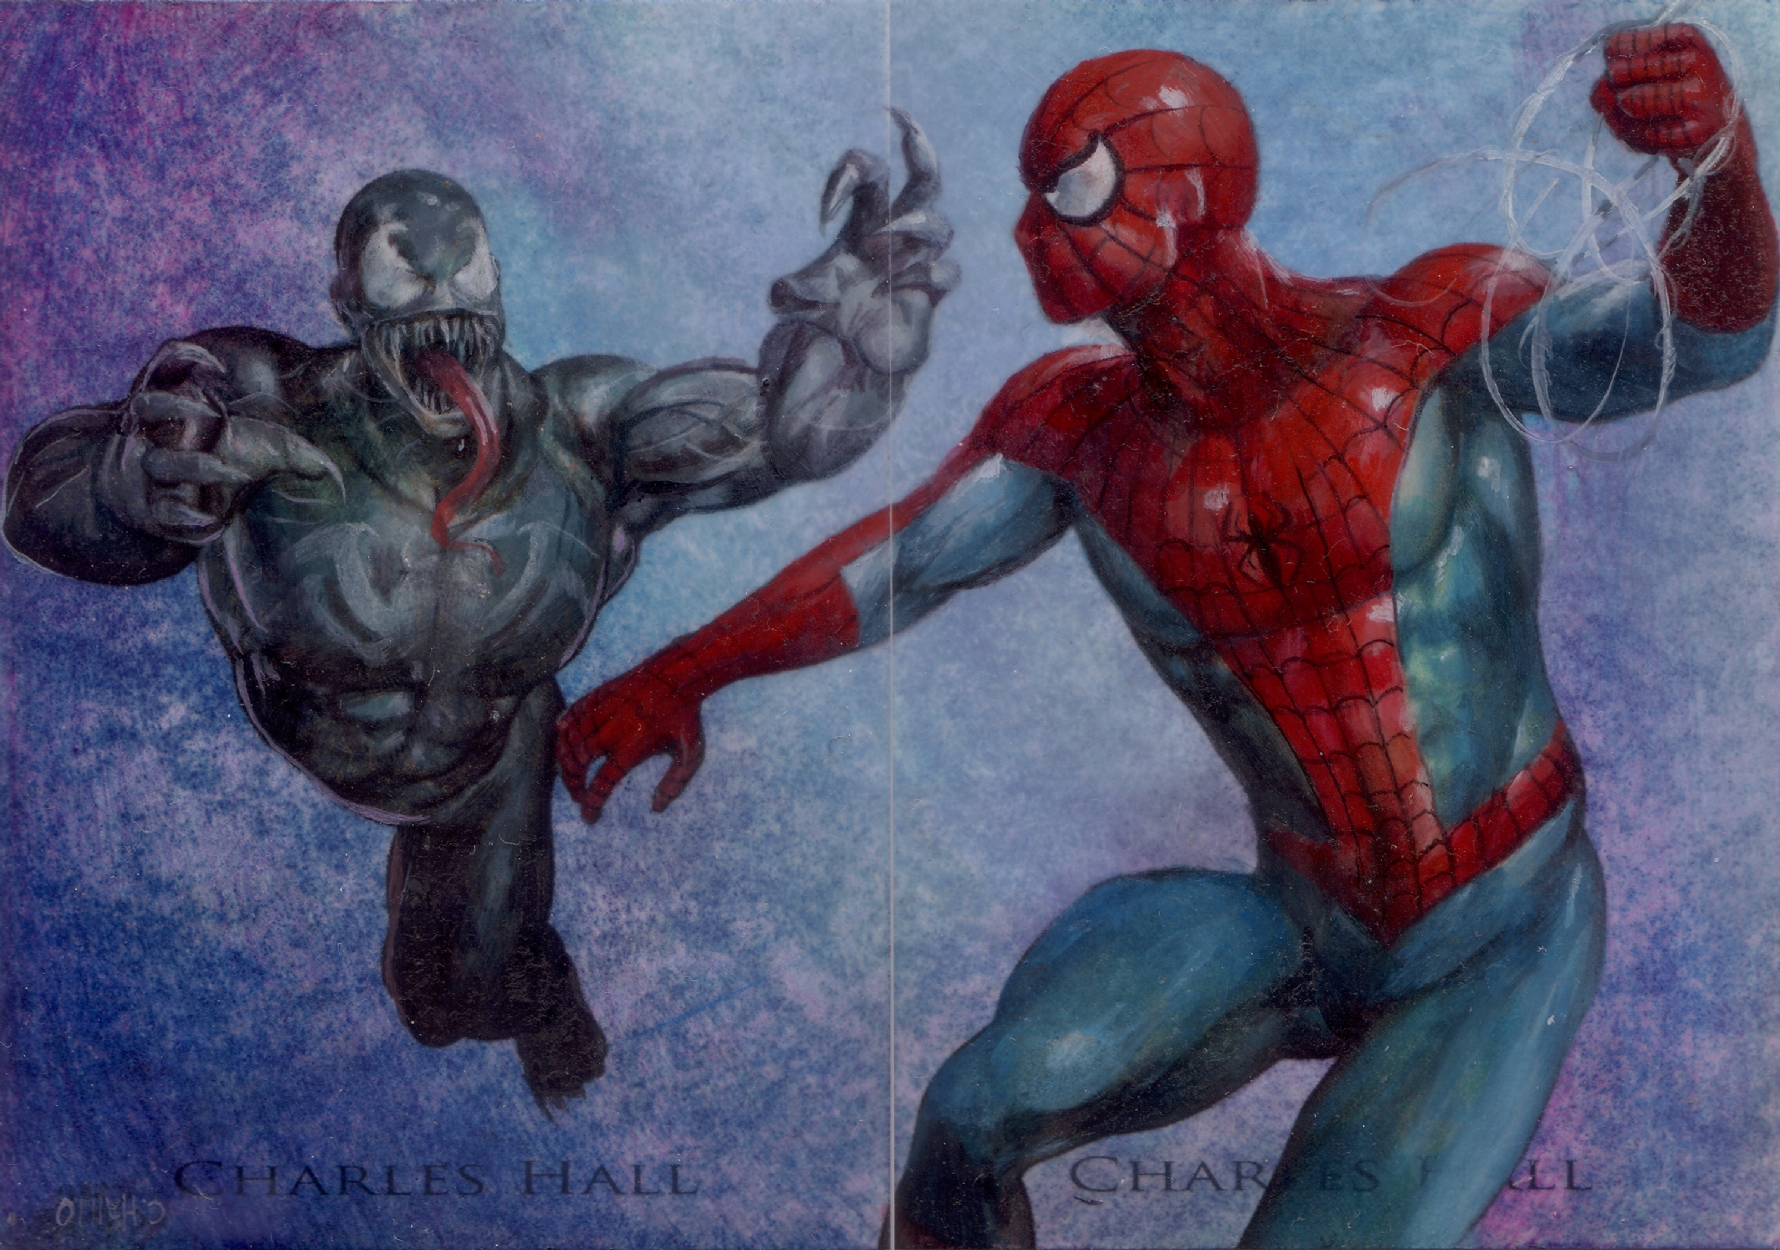 Spider Man Vs Venom Psc Painted 2 Card Sketch Card Commission By